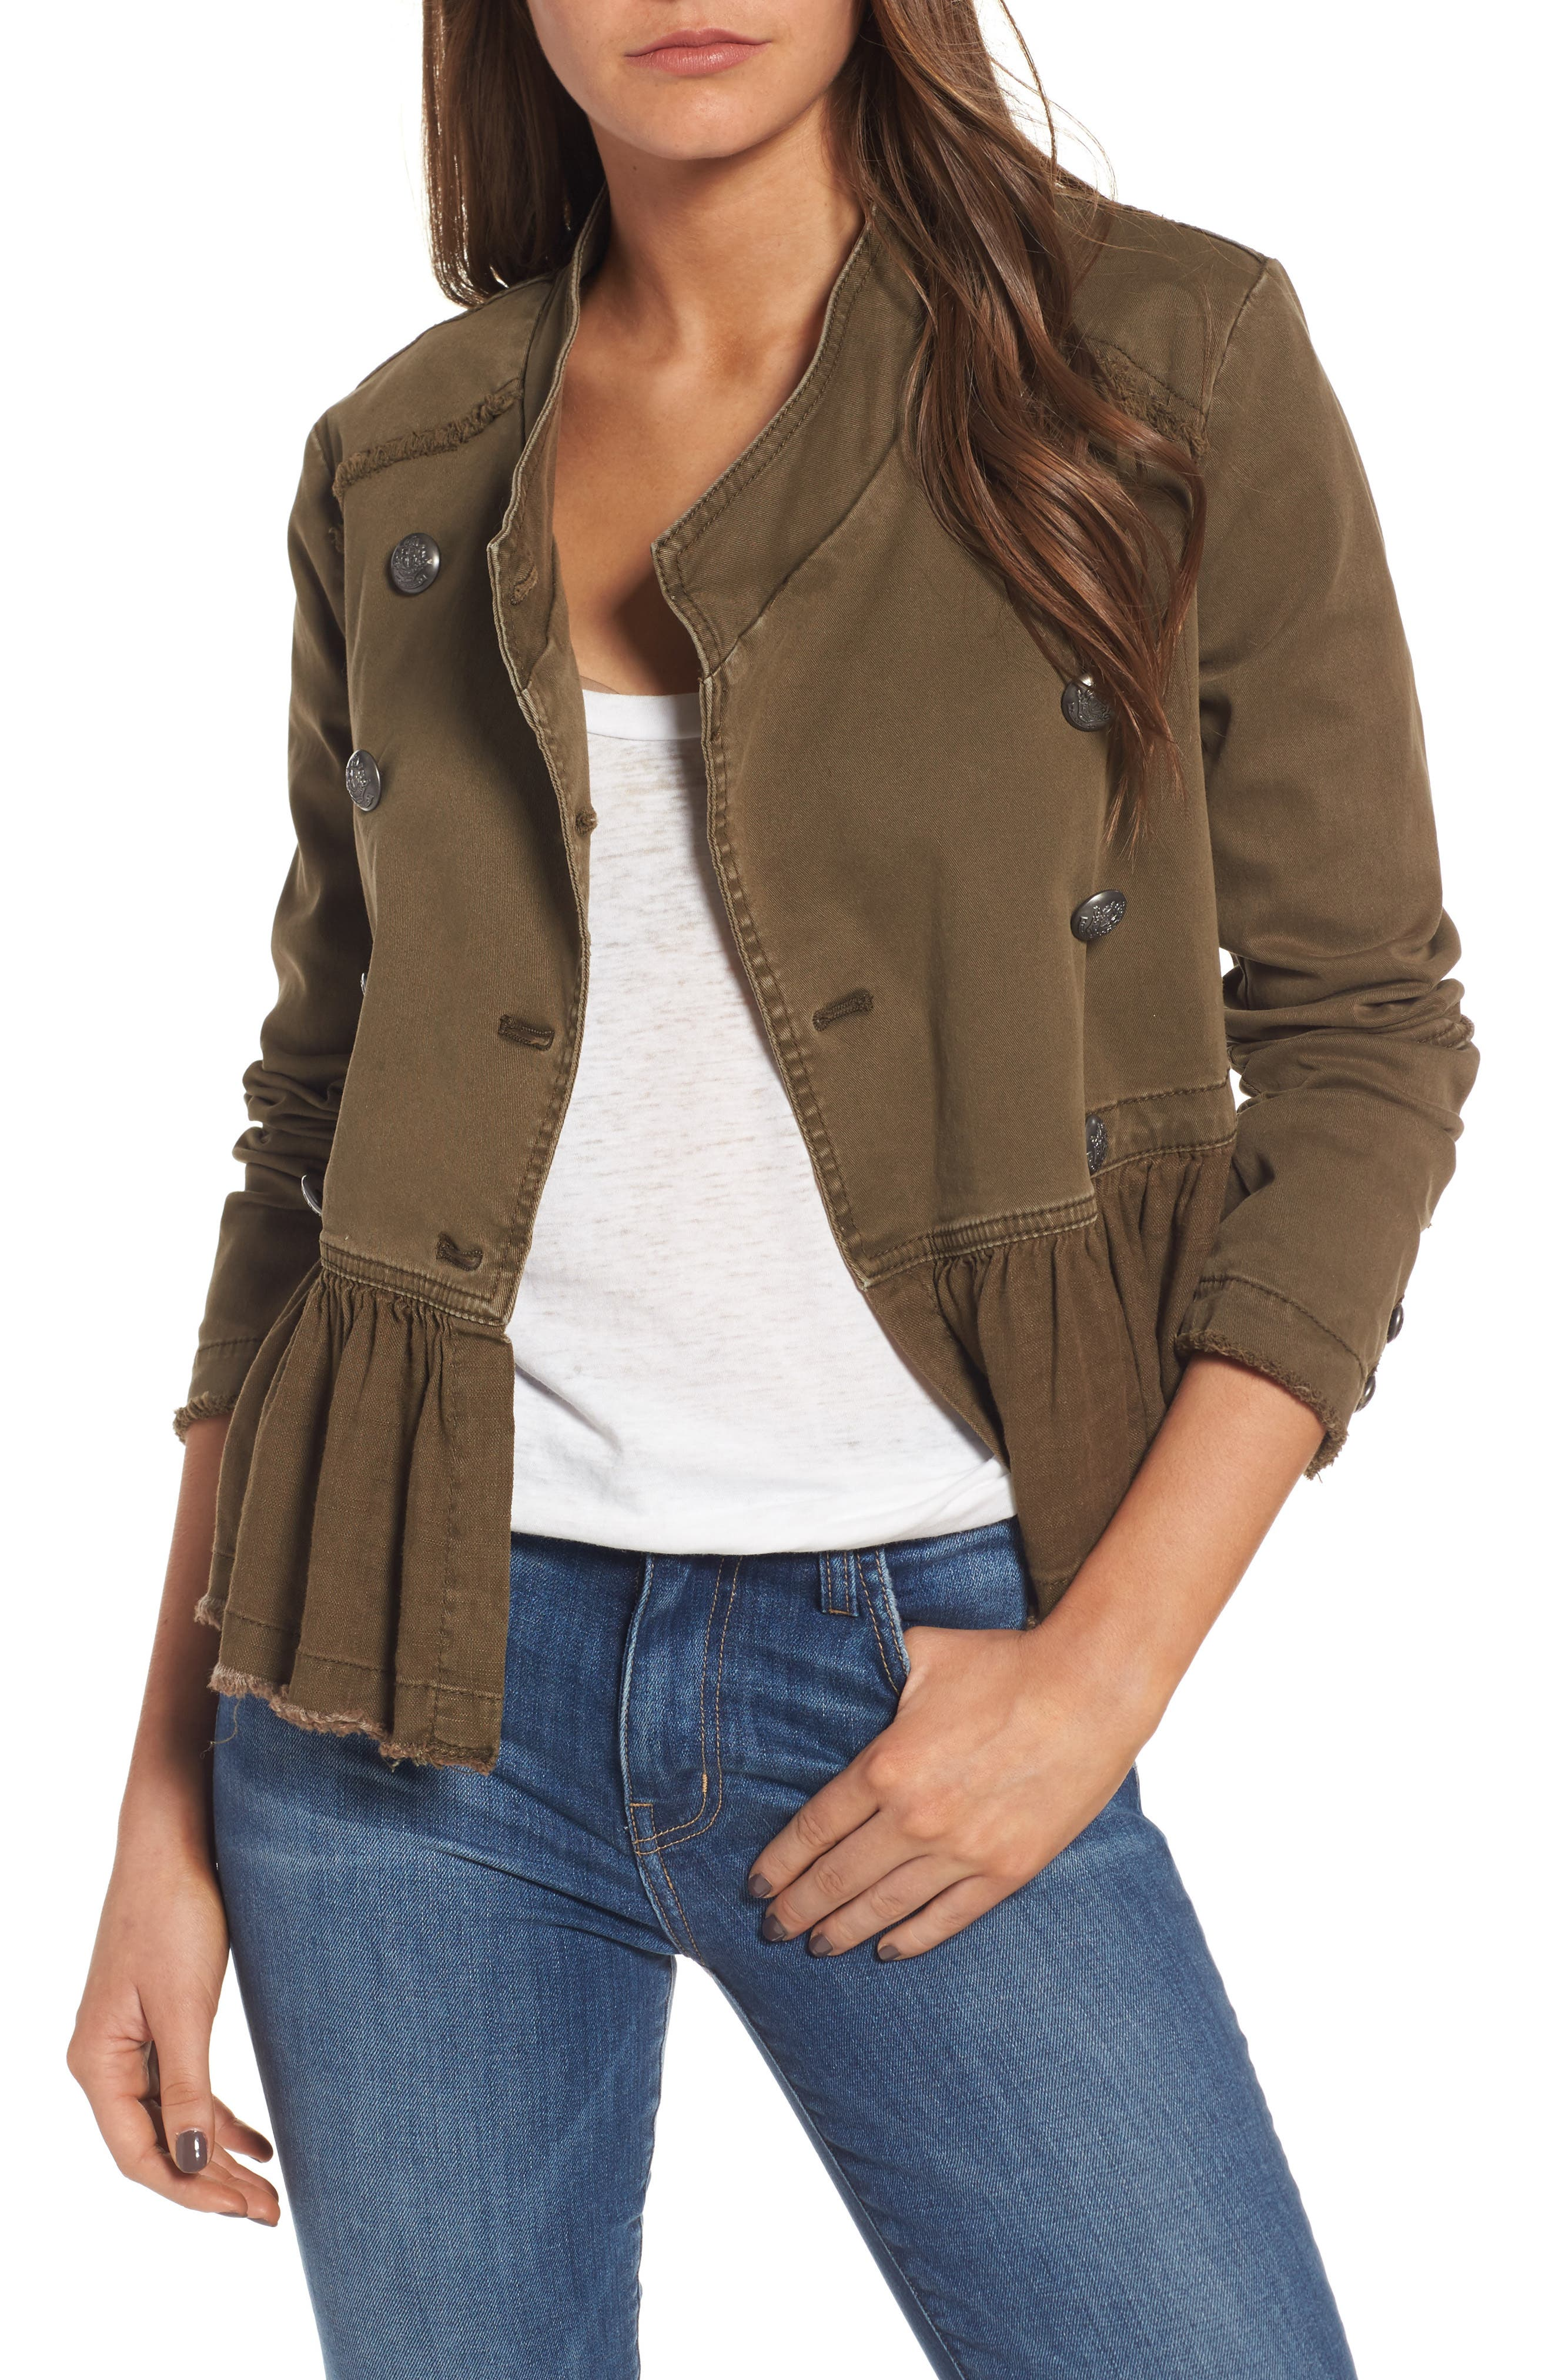 Free People Ruffle Hem Military Jacket